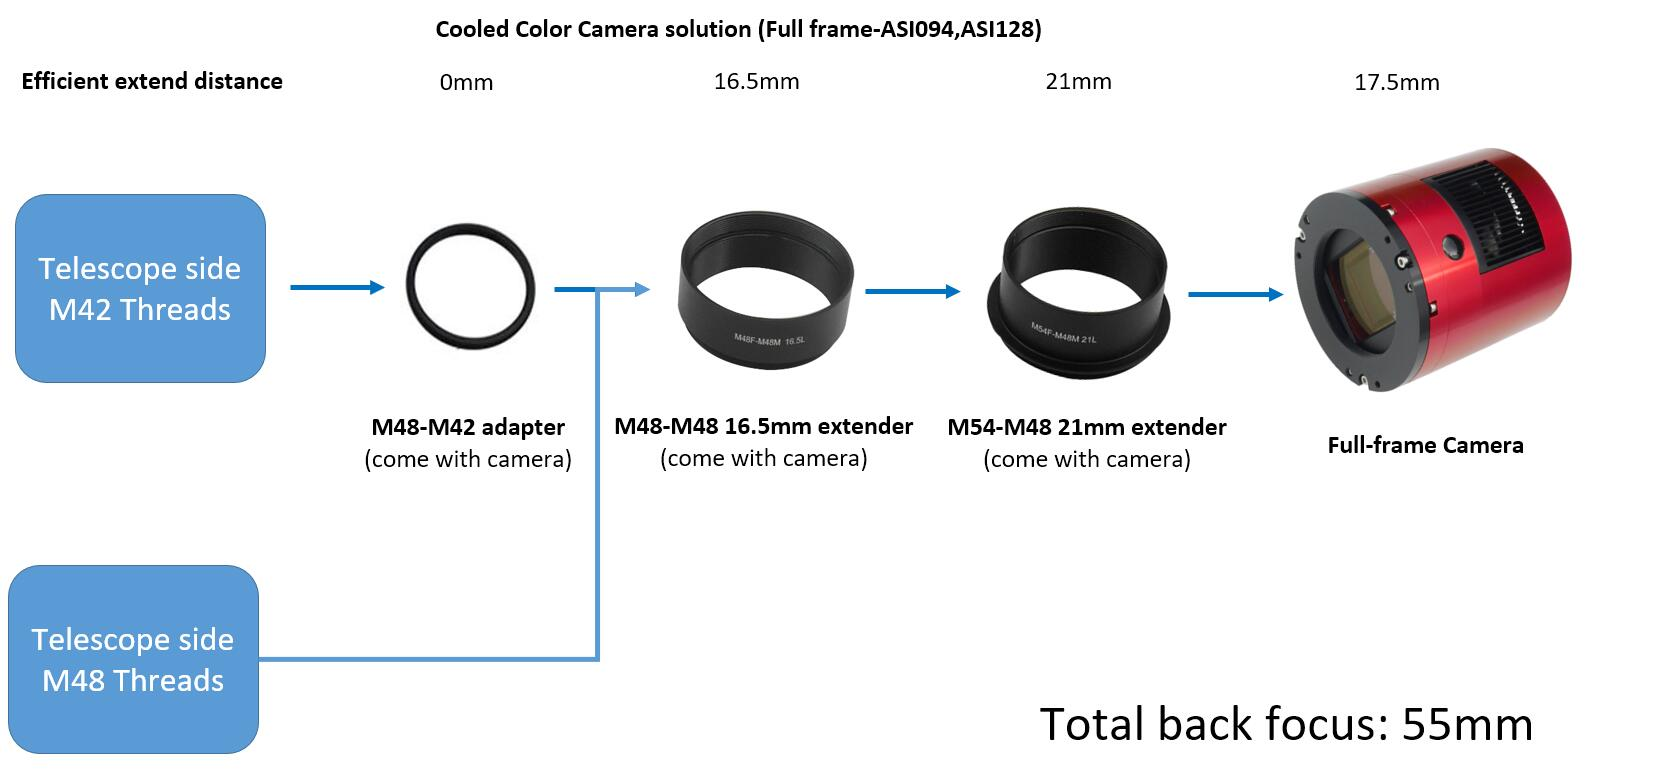 Cooled Color Camera solution(Full frame-ASI094,ASI128)